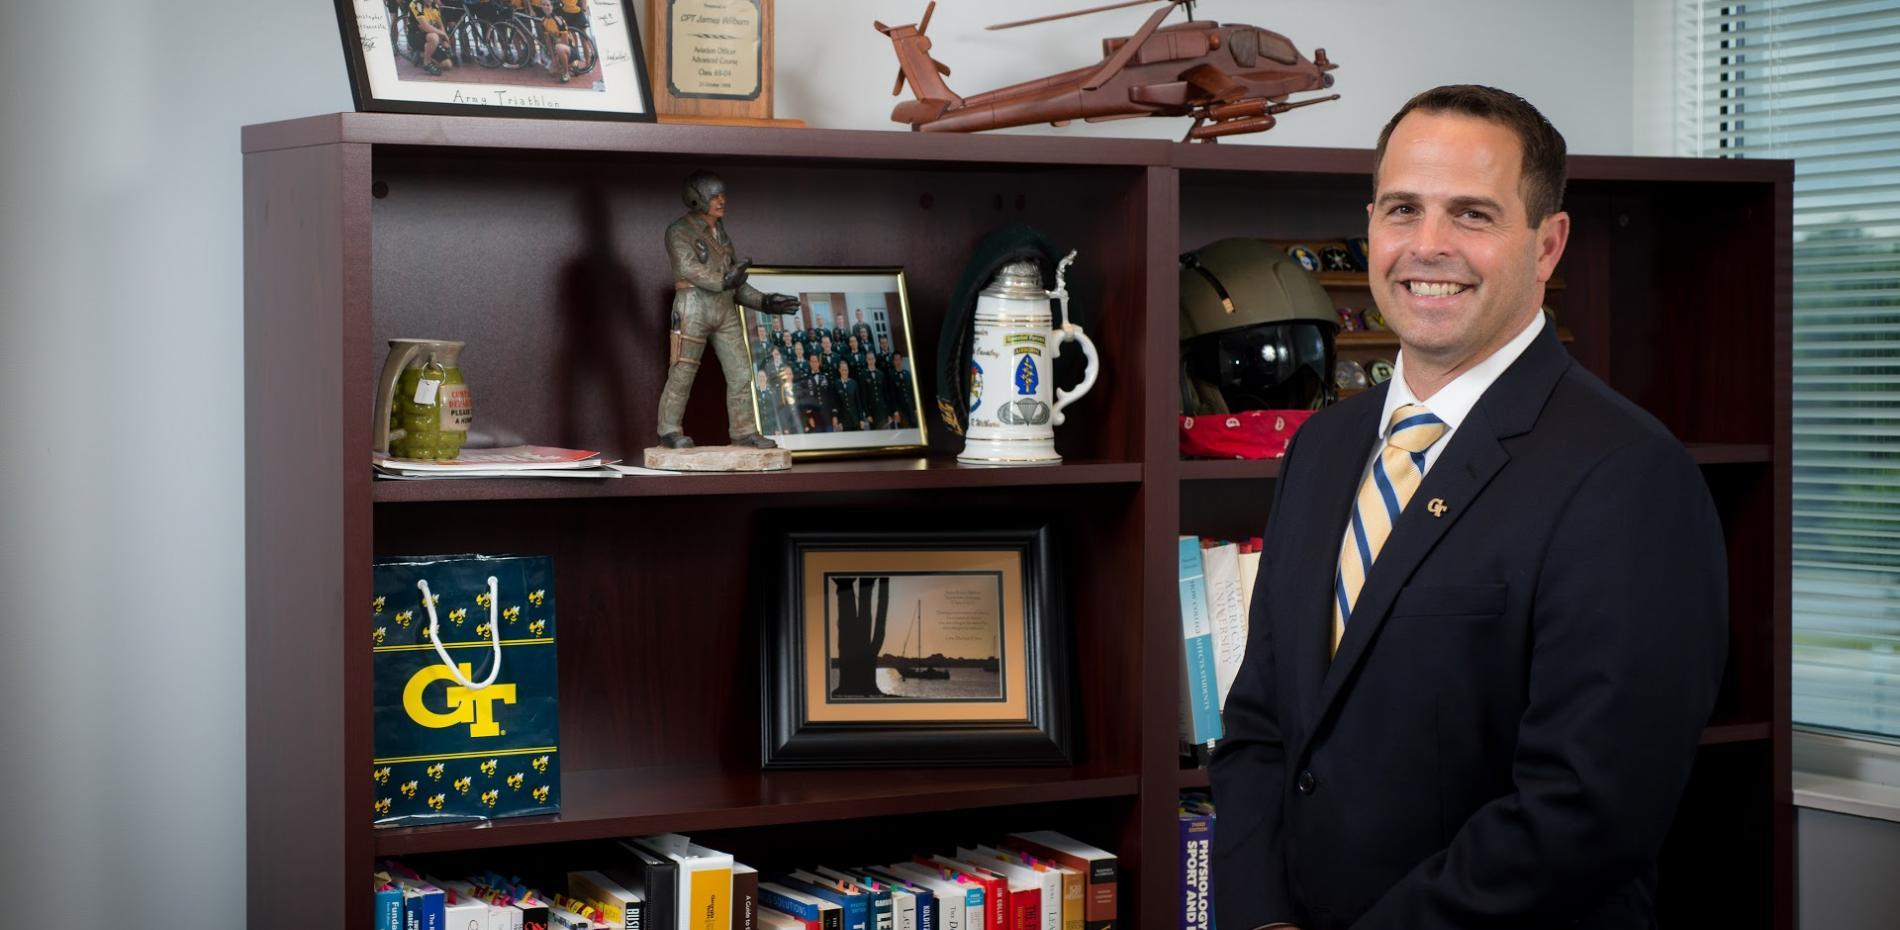 James Wilburn standing in front of bookshelf in his office with military memorabilia